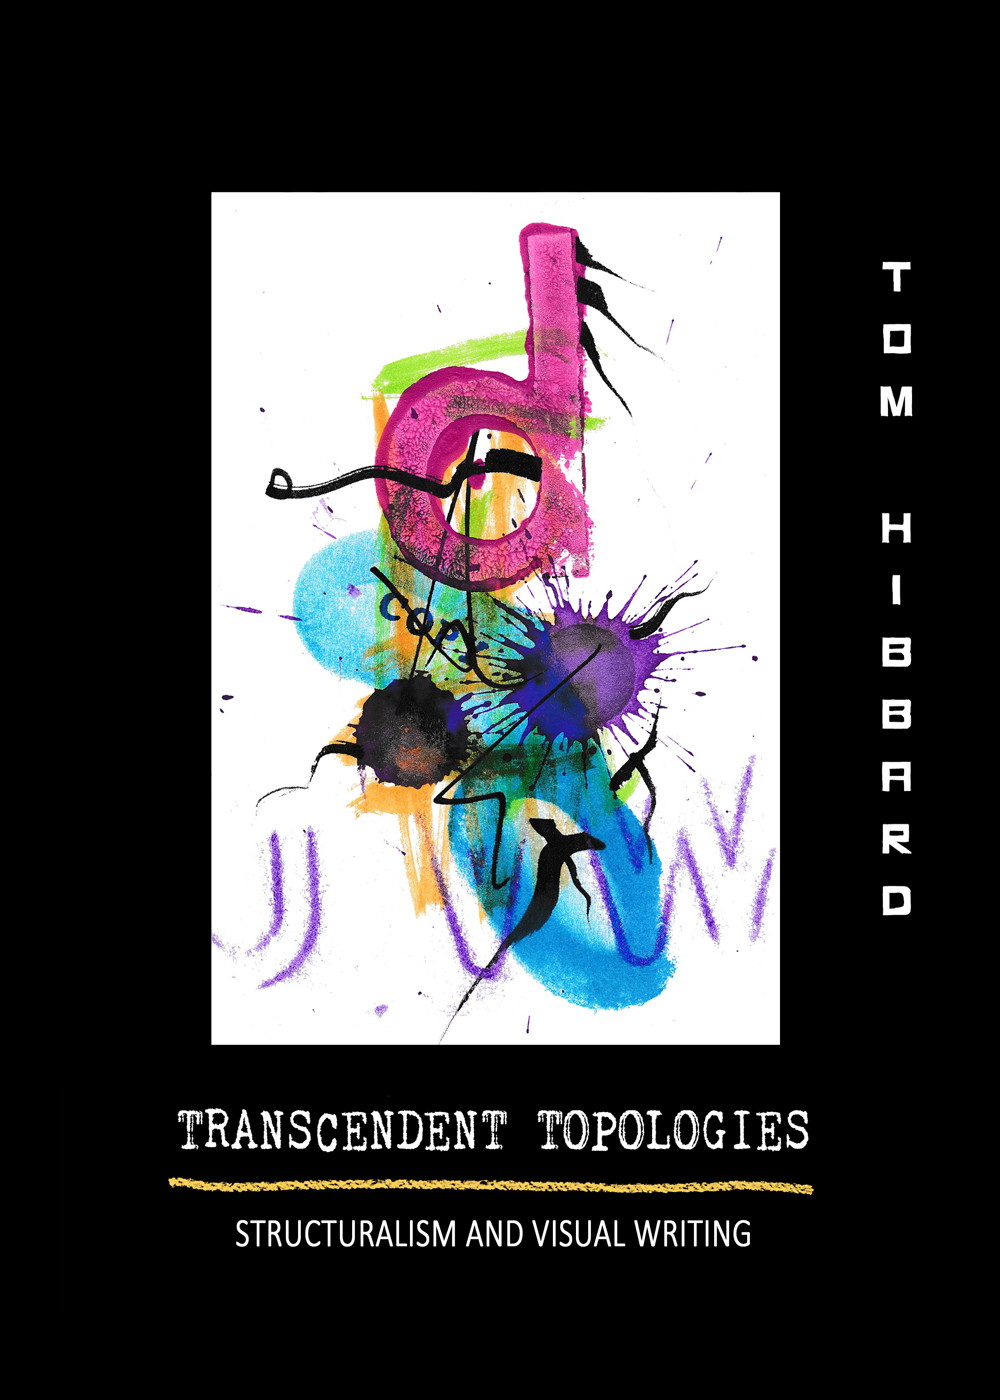 Transcendent Topologies: Structuralism and Visual Writing